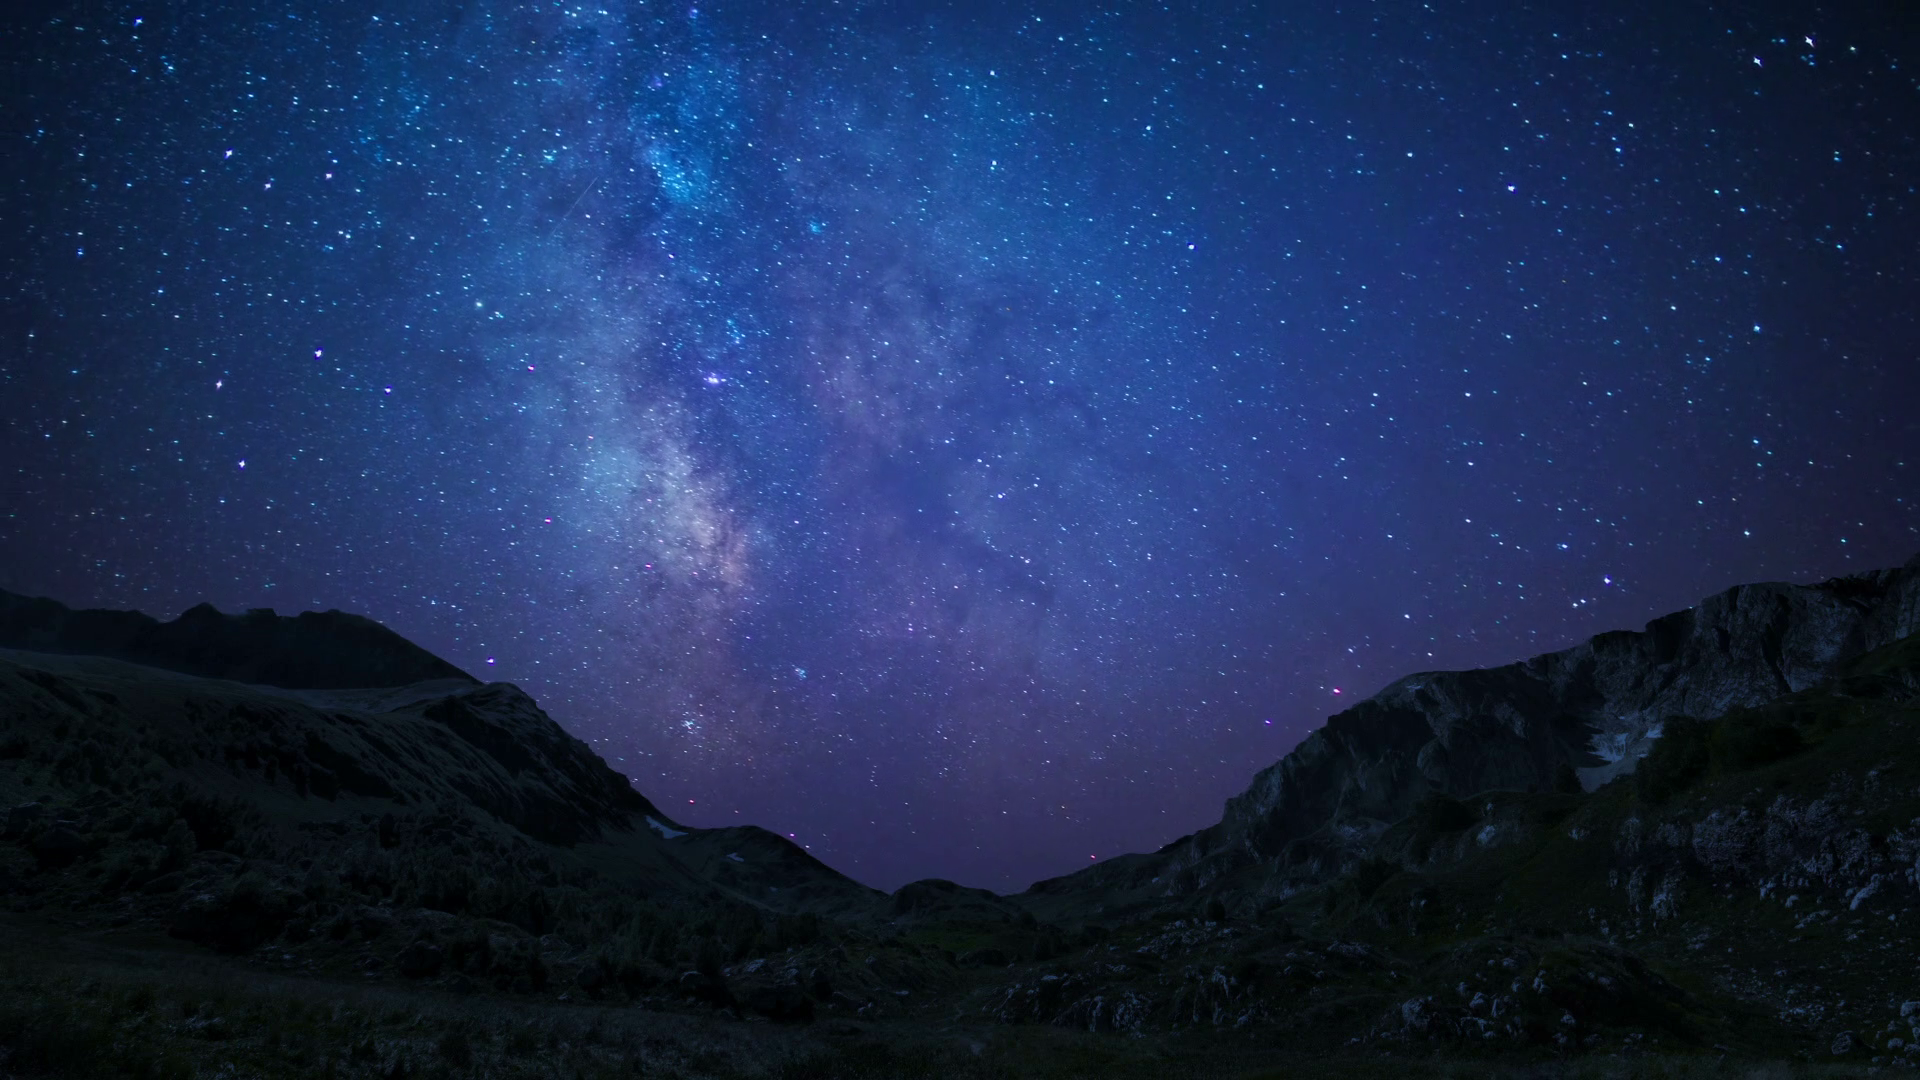 night sky stars milkyway on mountains background - Starry Sky Background PNG